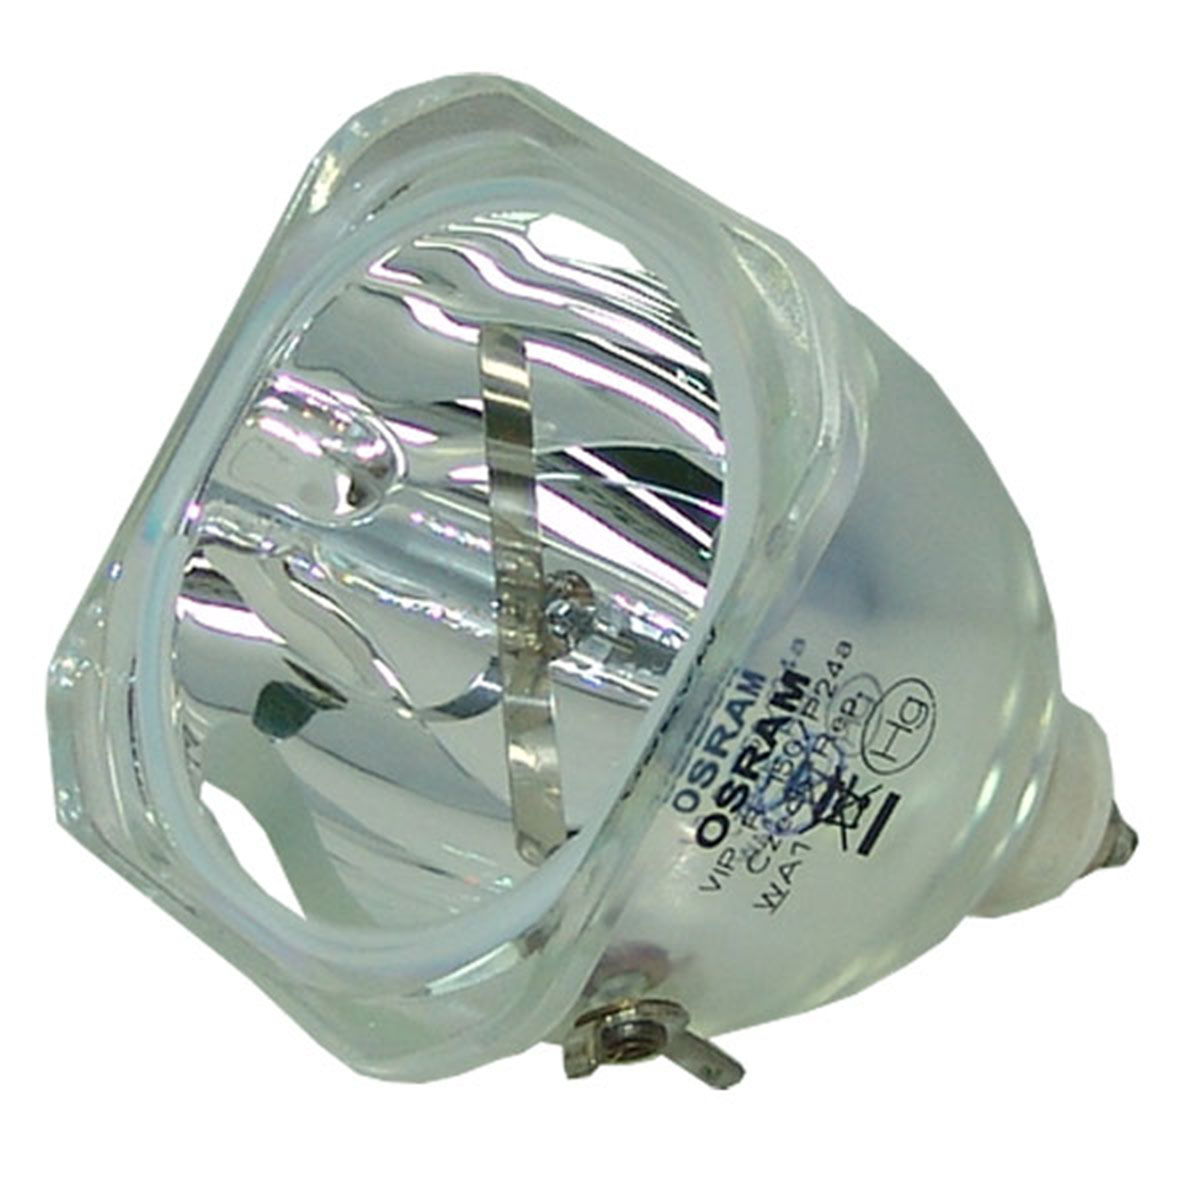 Osram Bare Lamp For PLUS U21110 Projector DLP LCD Bulb